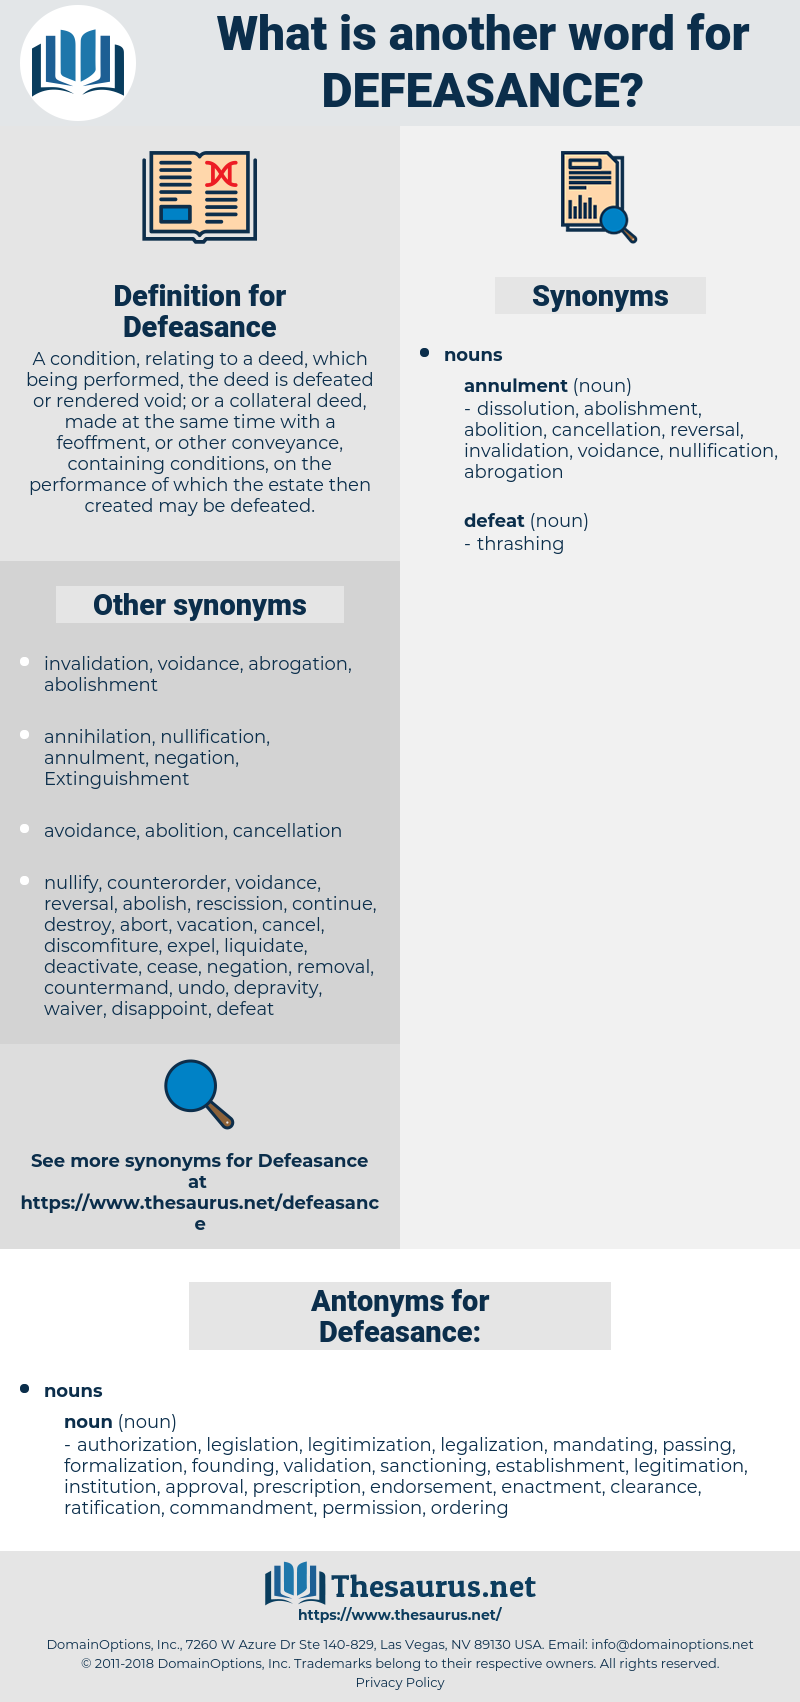 Defeasance, synonym Defeasance, another word for Defeasance, words like Defeasance, thesaurus Defeasance